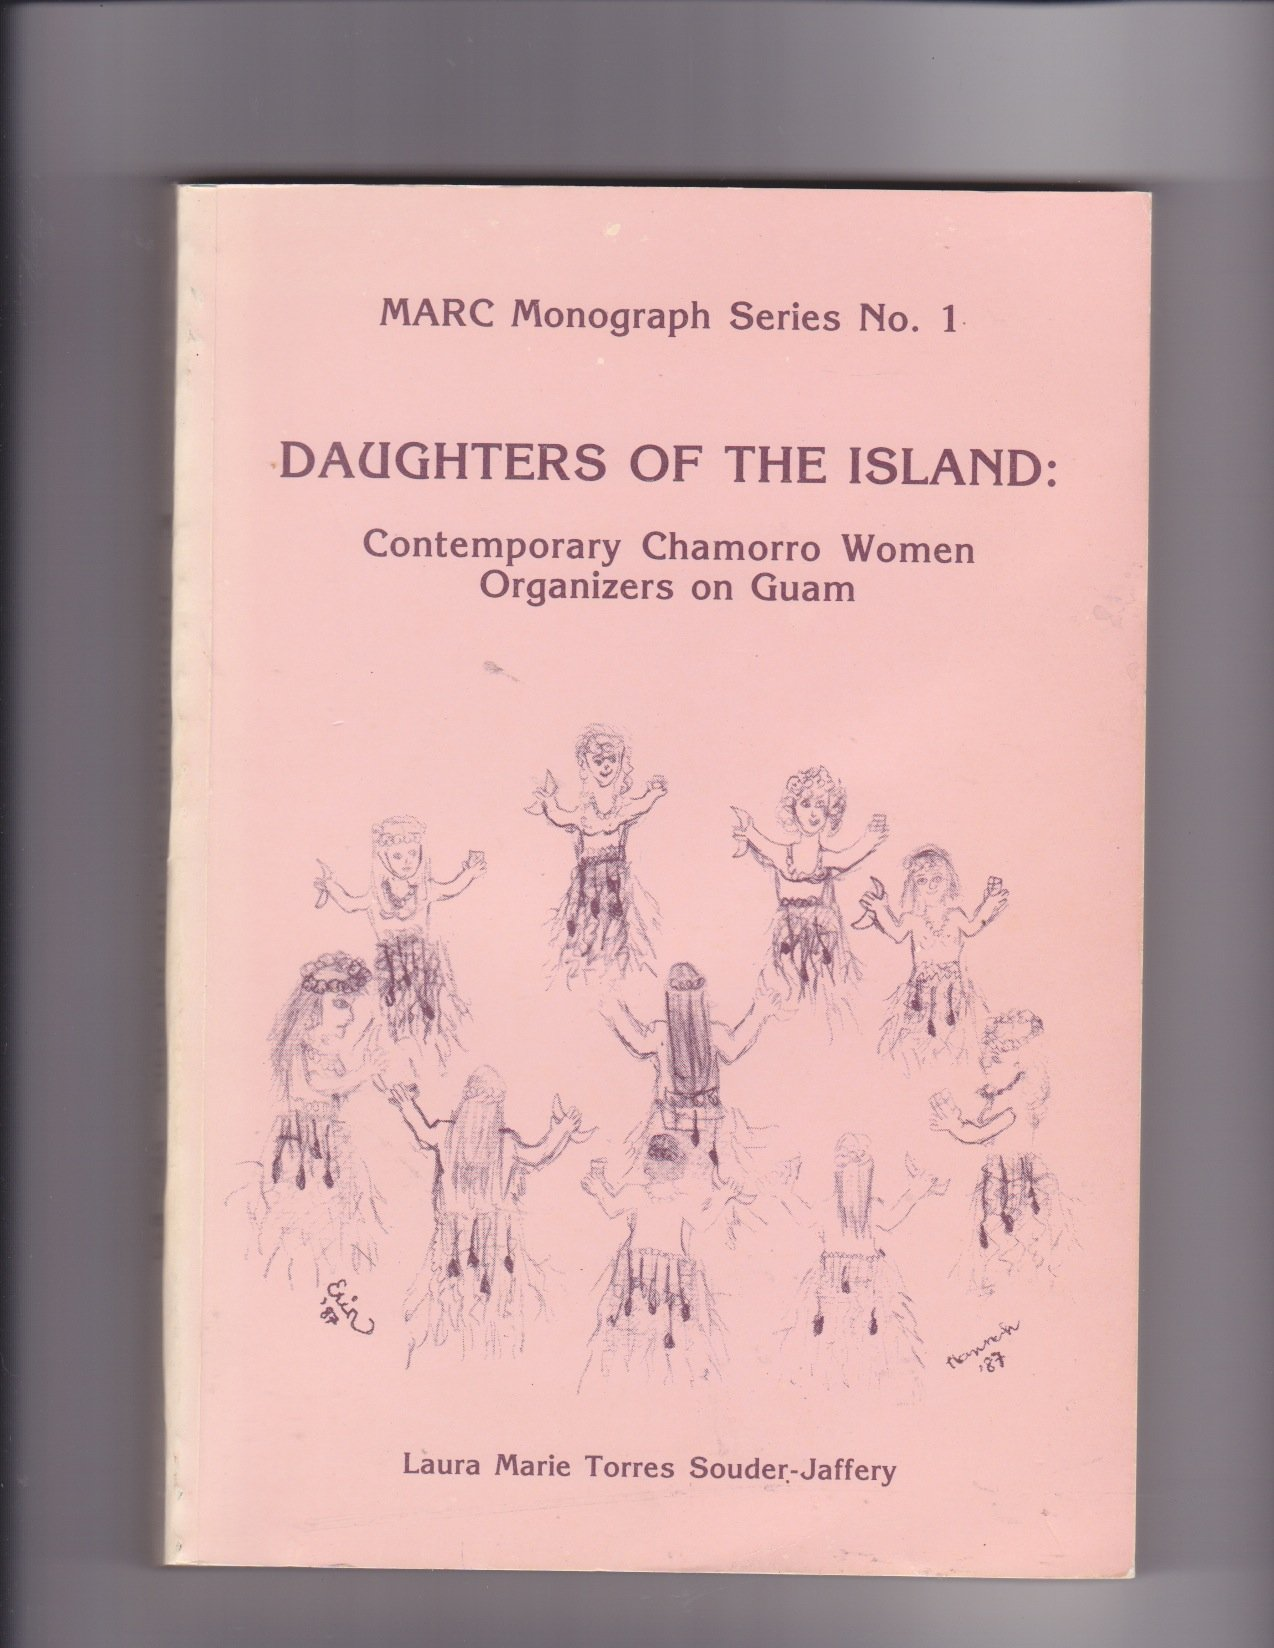 Daughters of the Island: Contemporary Chamorro Women Organizers on Guam by UPA